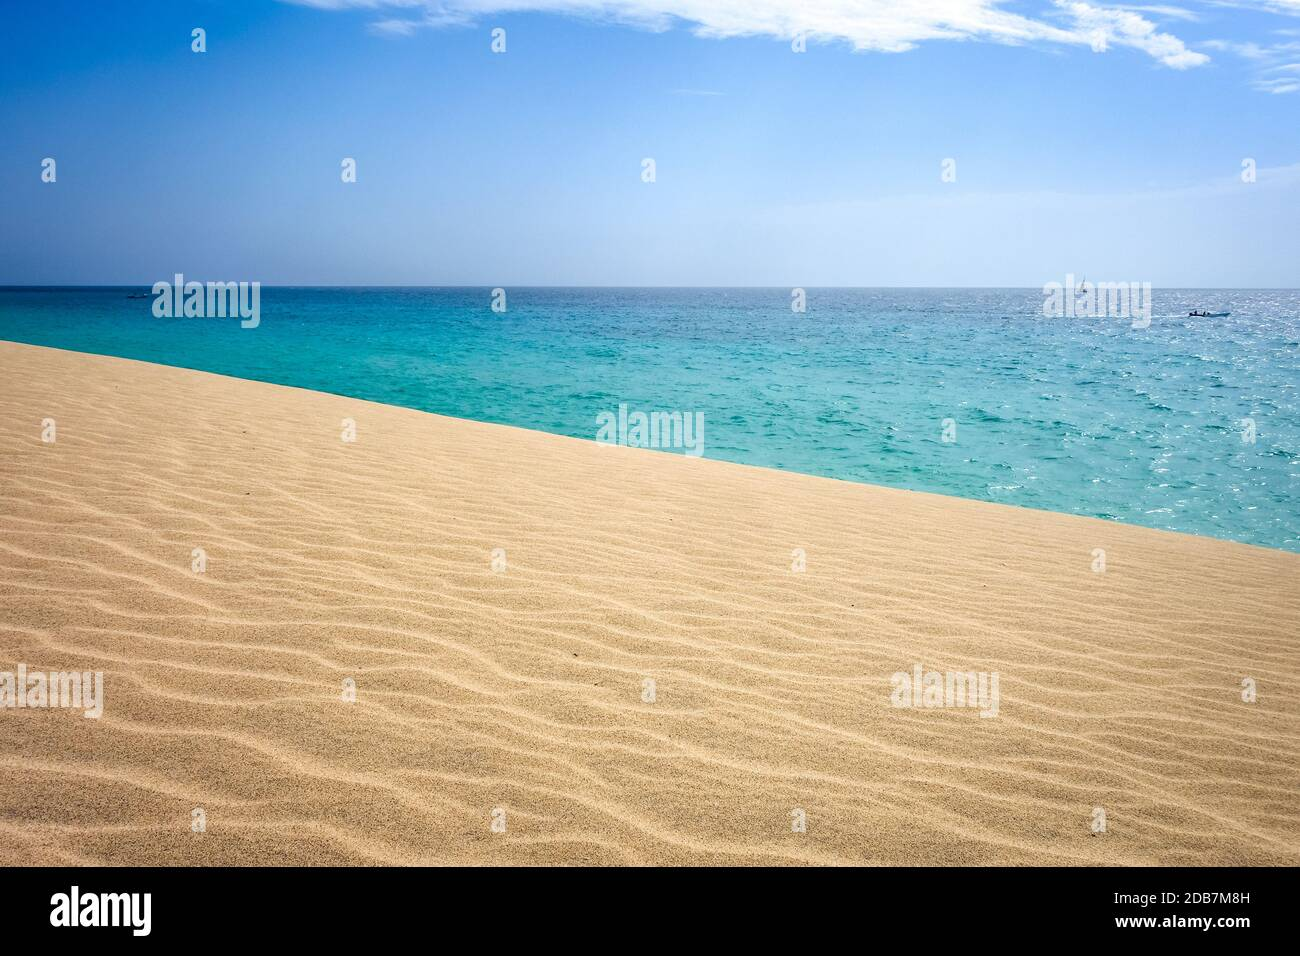 Ponta preta beach and dune in Santa Maria, Sal Island, Cape Verde, Africa Stock Photo